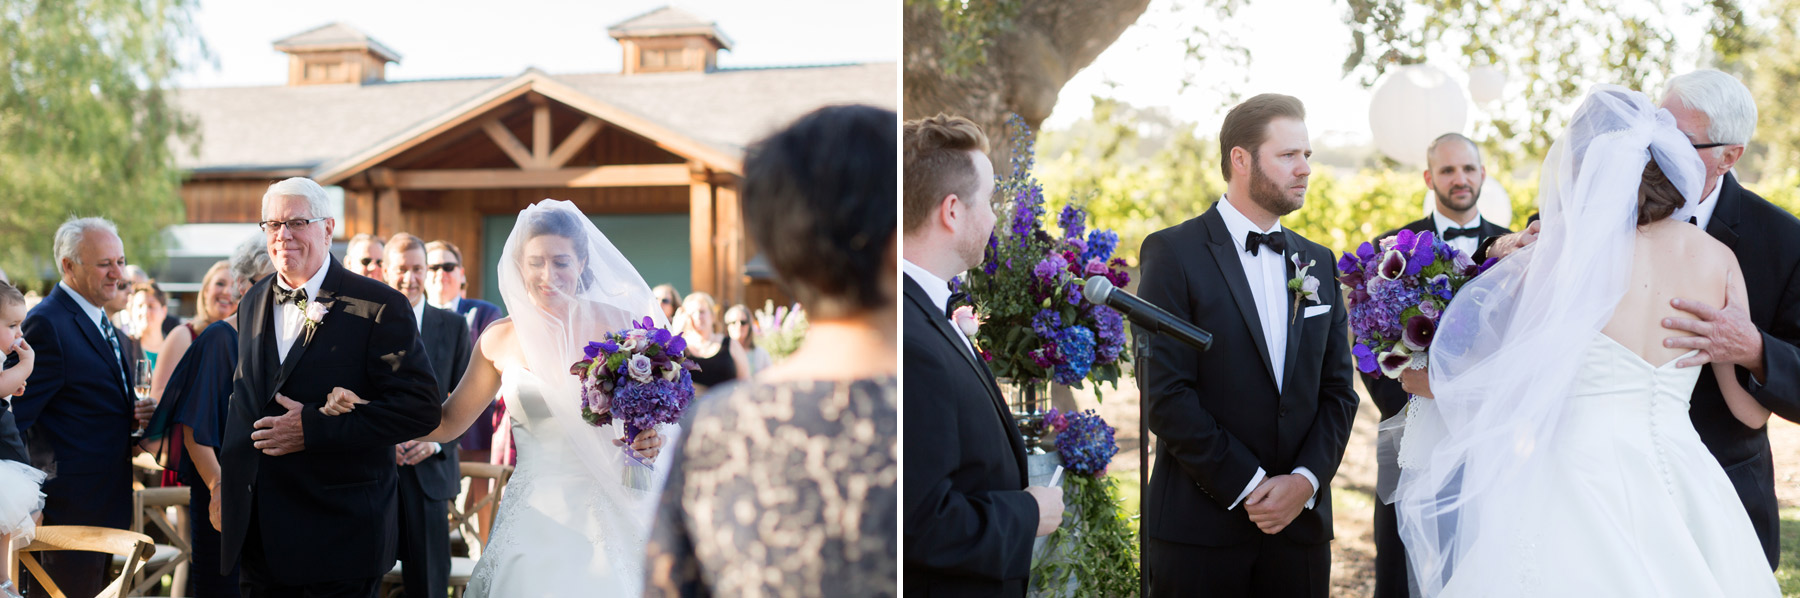 father of the bride roblar winery wedding